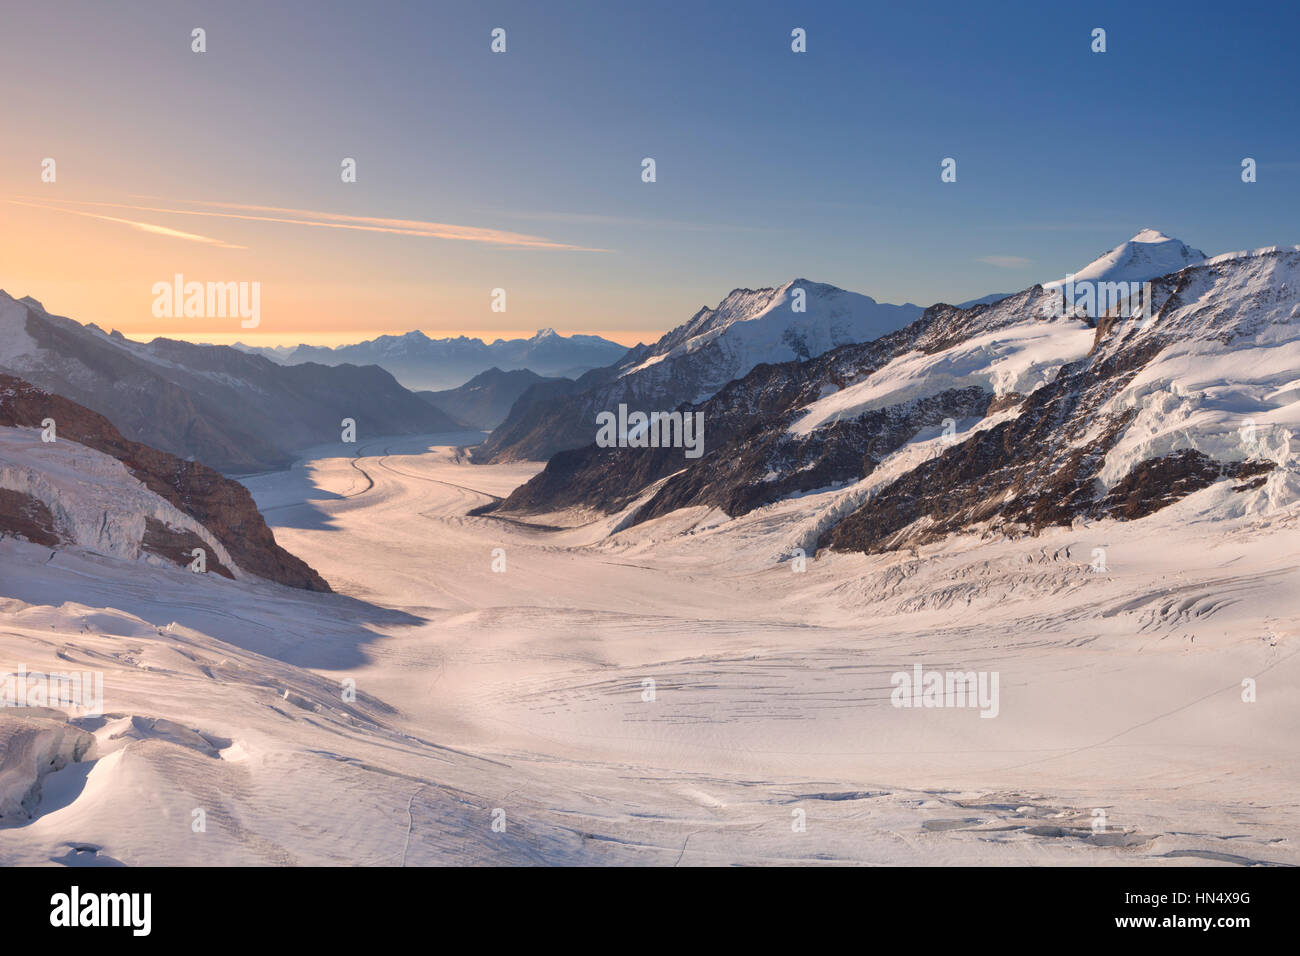 Sunrise over the Aletsch Glacier from Jungfraujoch in Switzerland on a clear morning. Stock Photo